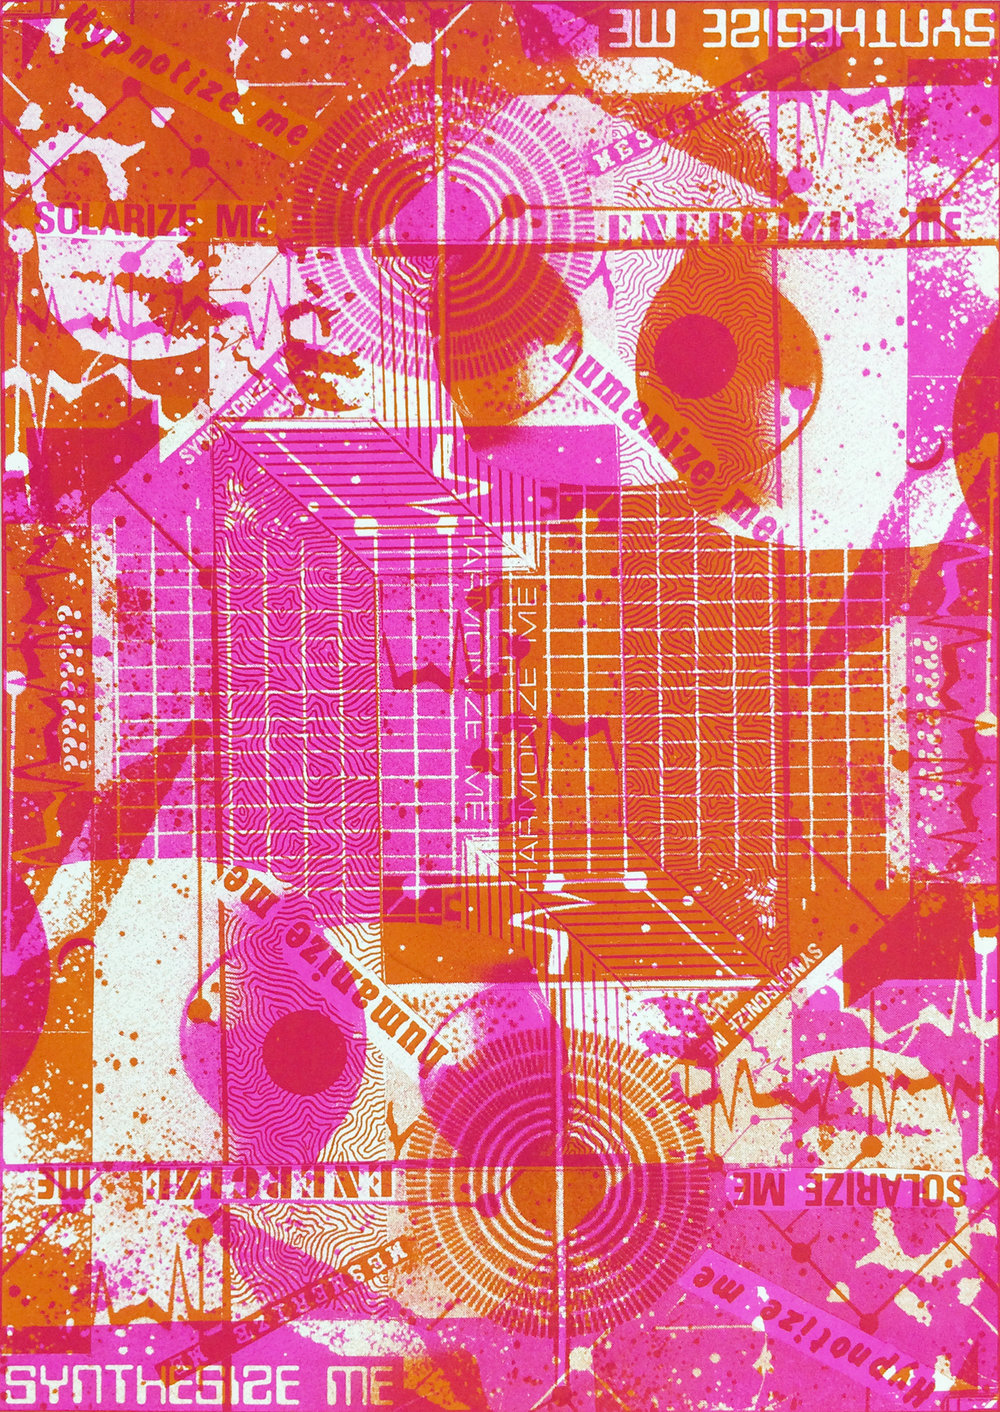 "GWENAËL RATTKE   Synthesize Me , unique silkscreen on paper (1 of 1), 30.25"" x 22.5"", 2014"